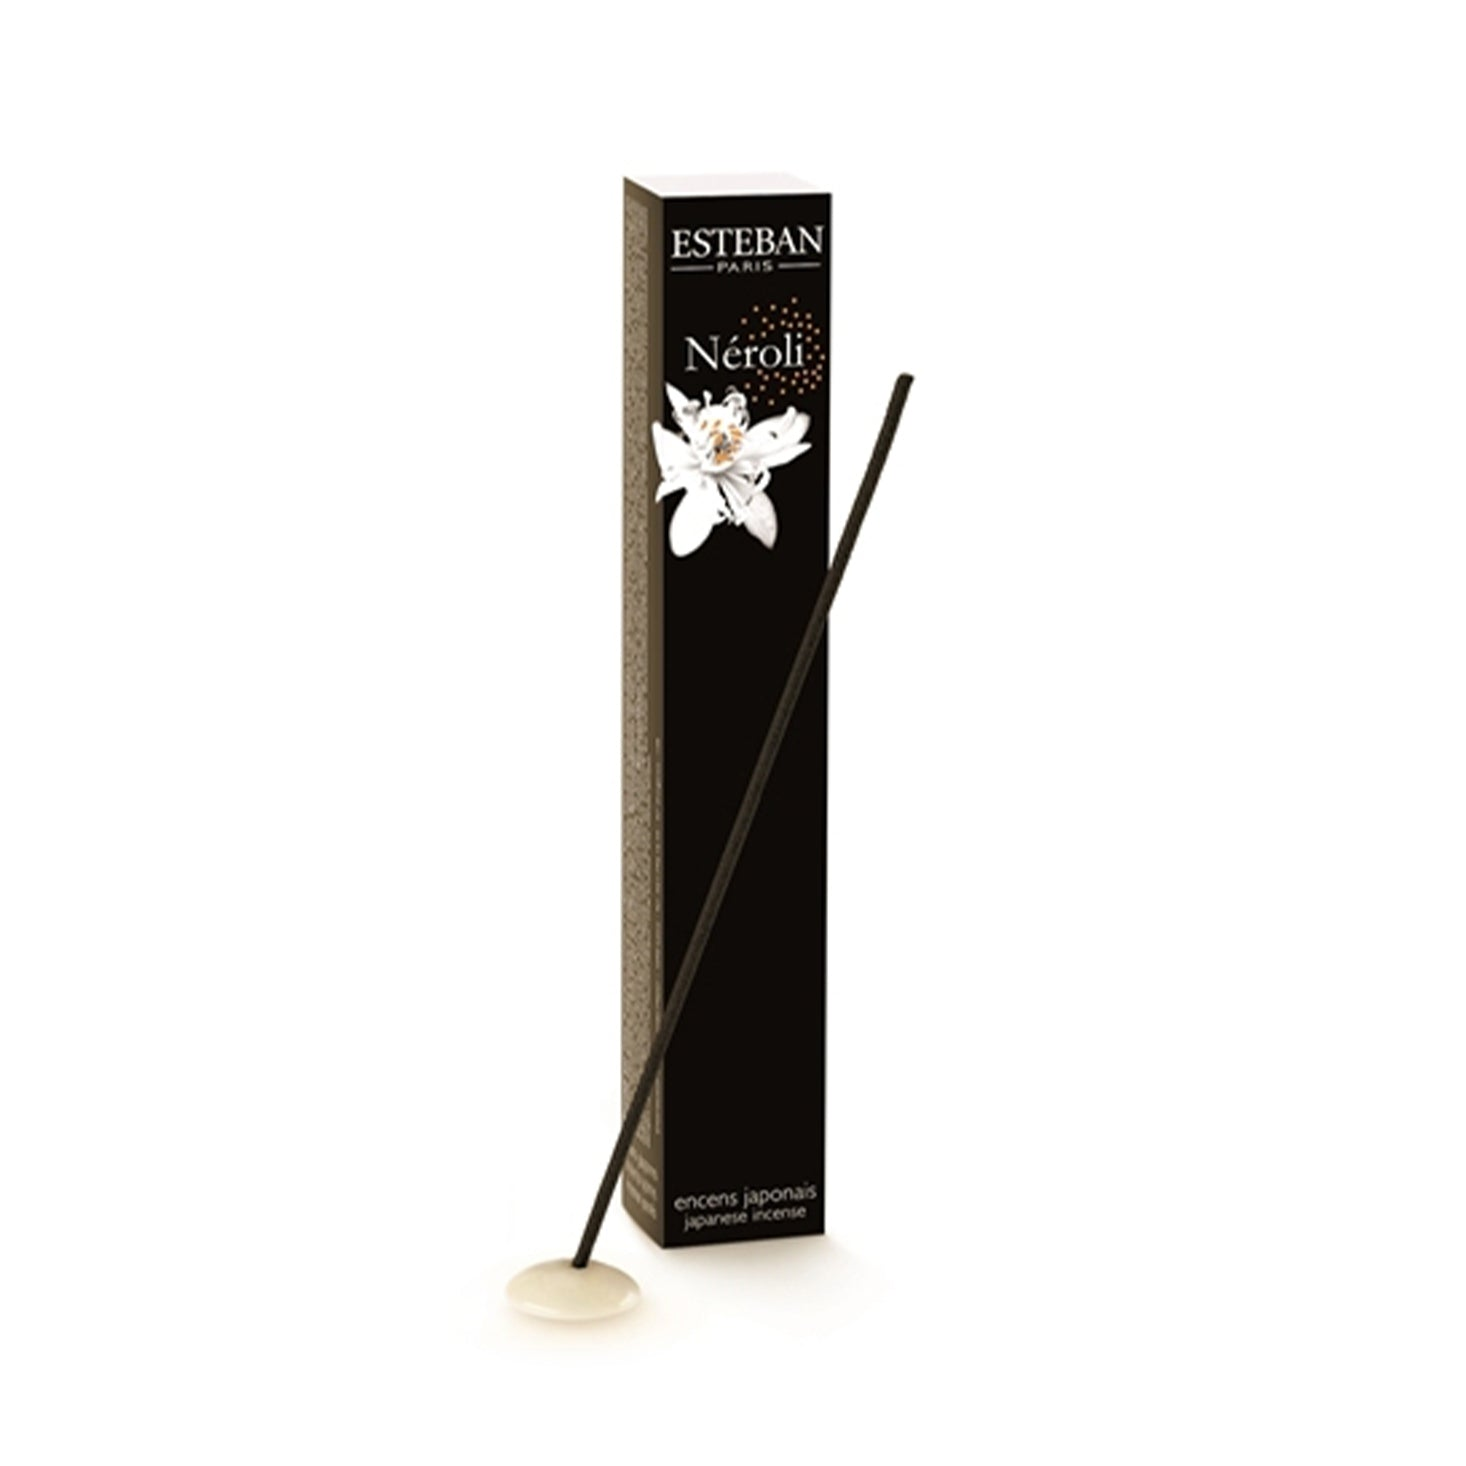 Esteban Neroli Japanese Incense